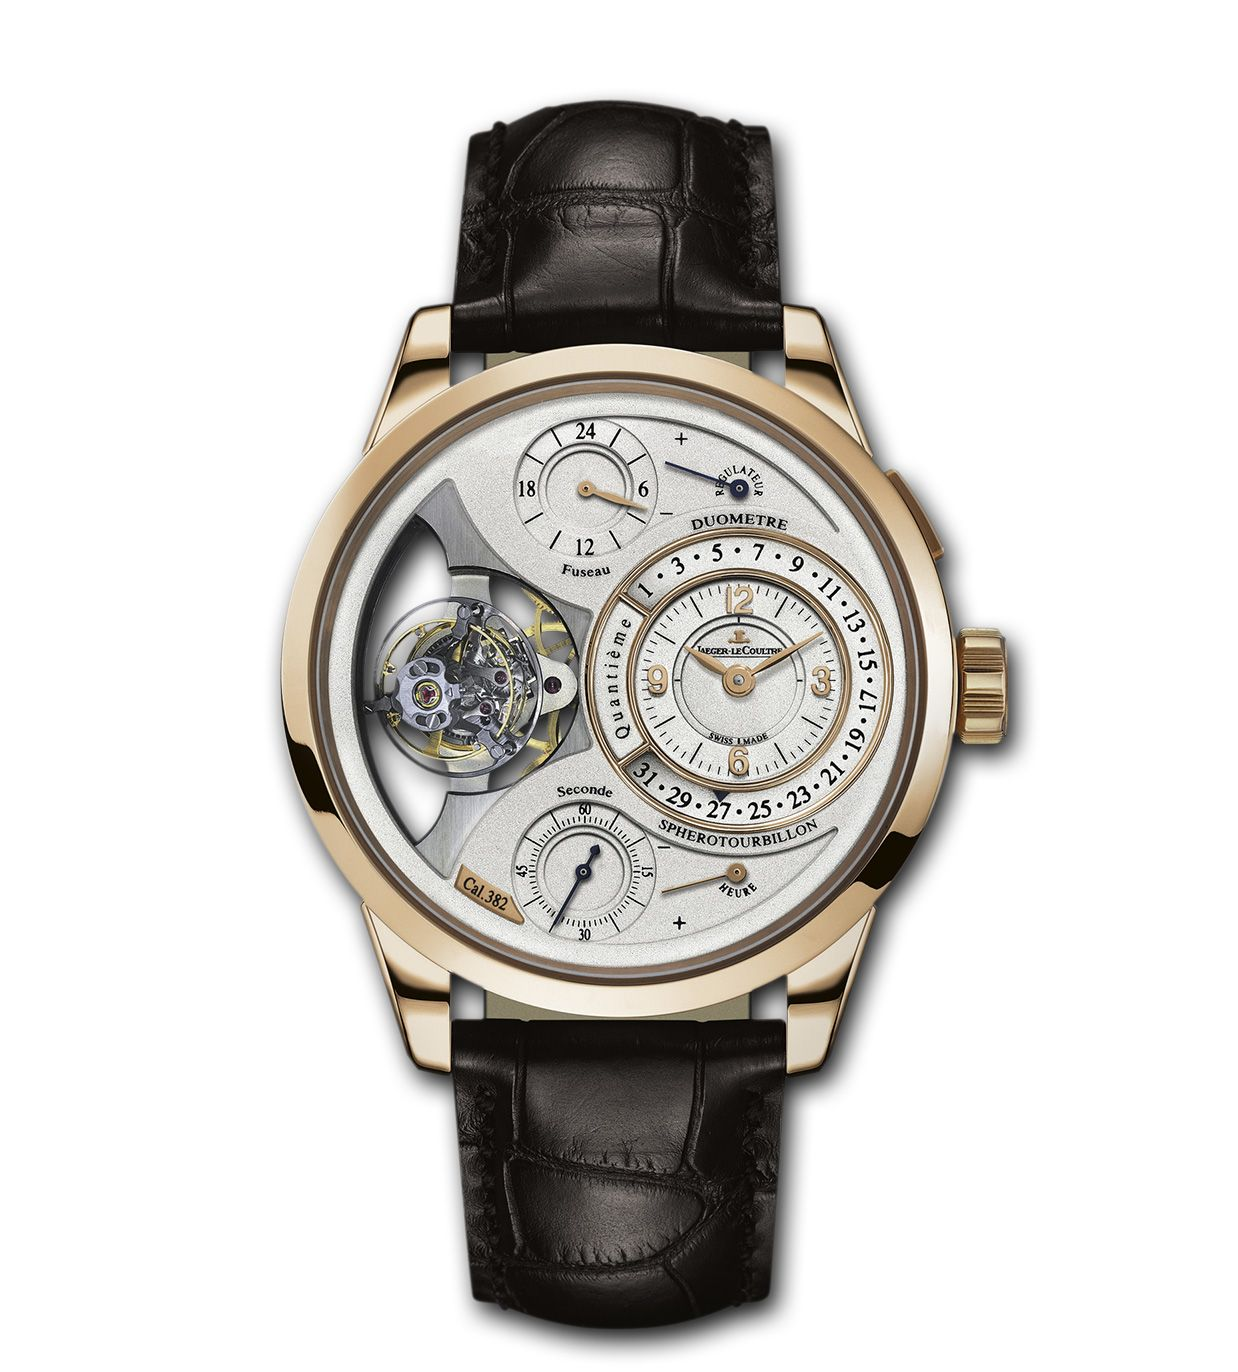 axis watches triple cabestan tourbillon baselworld tat